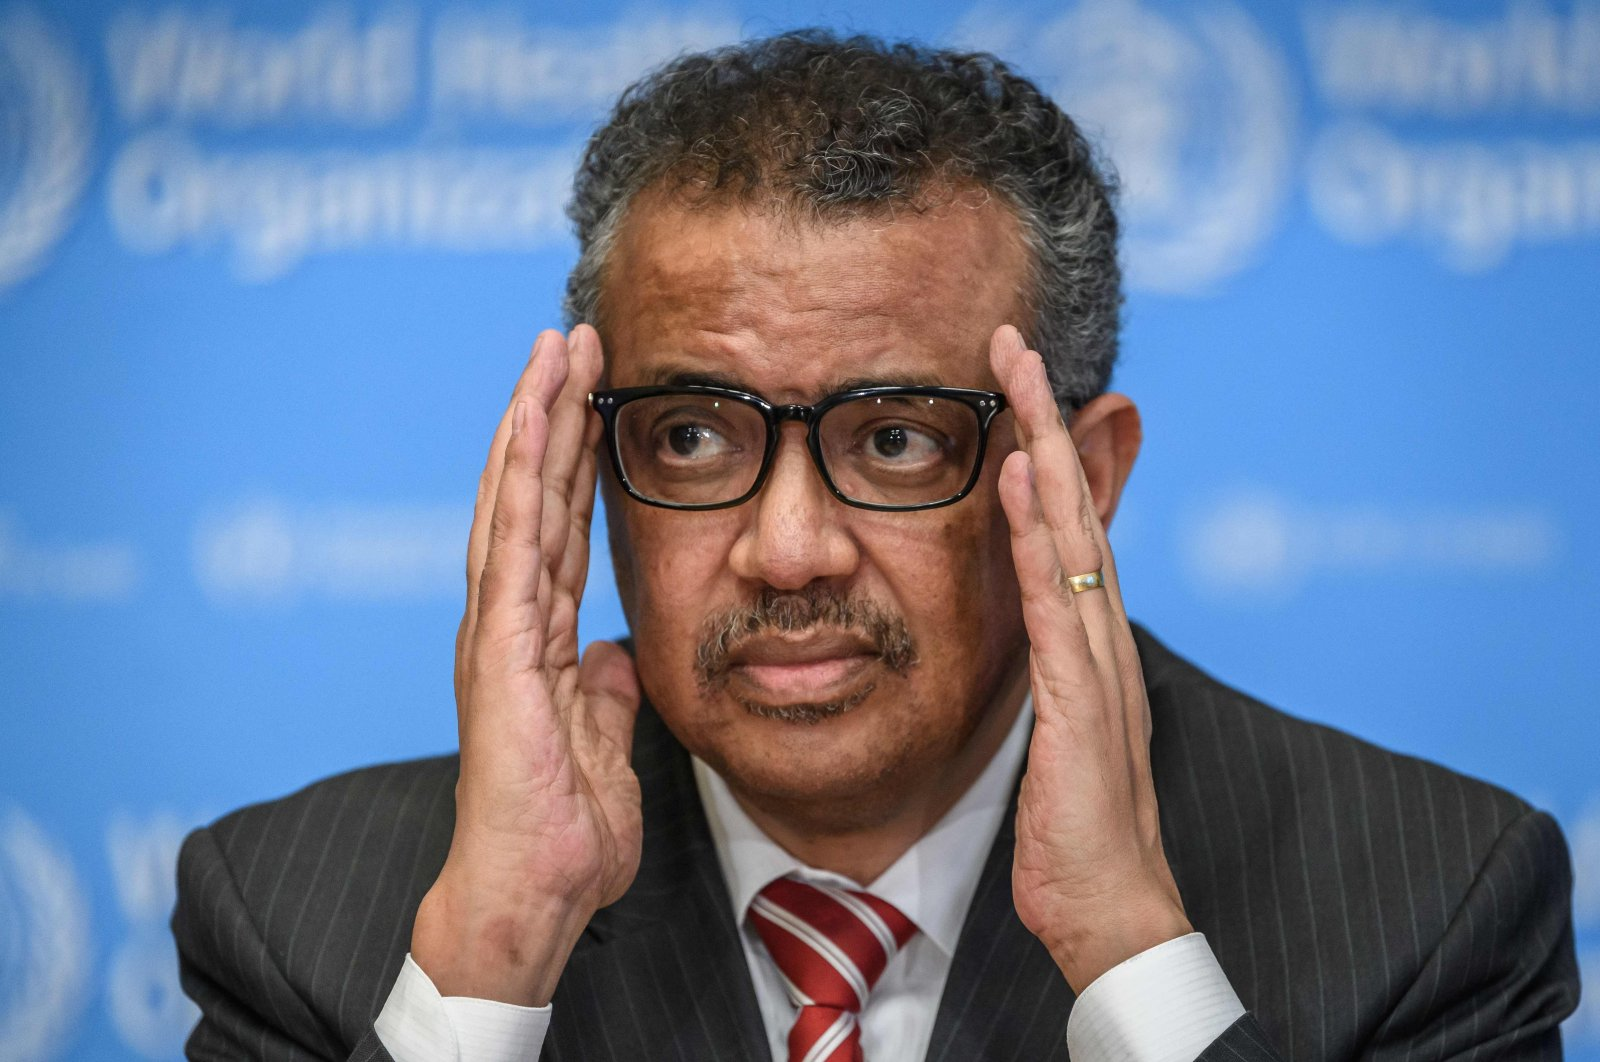 World Health Organization (WHO) Director-General Tedros Adhanom Ghebreyesus attends a daily press briefing on COVID-19 at the WHO headquarters in Geneva, March 11, 2020. (AFP Photo)